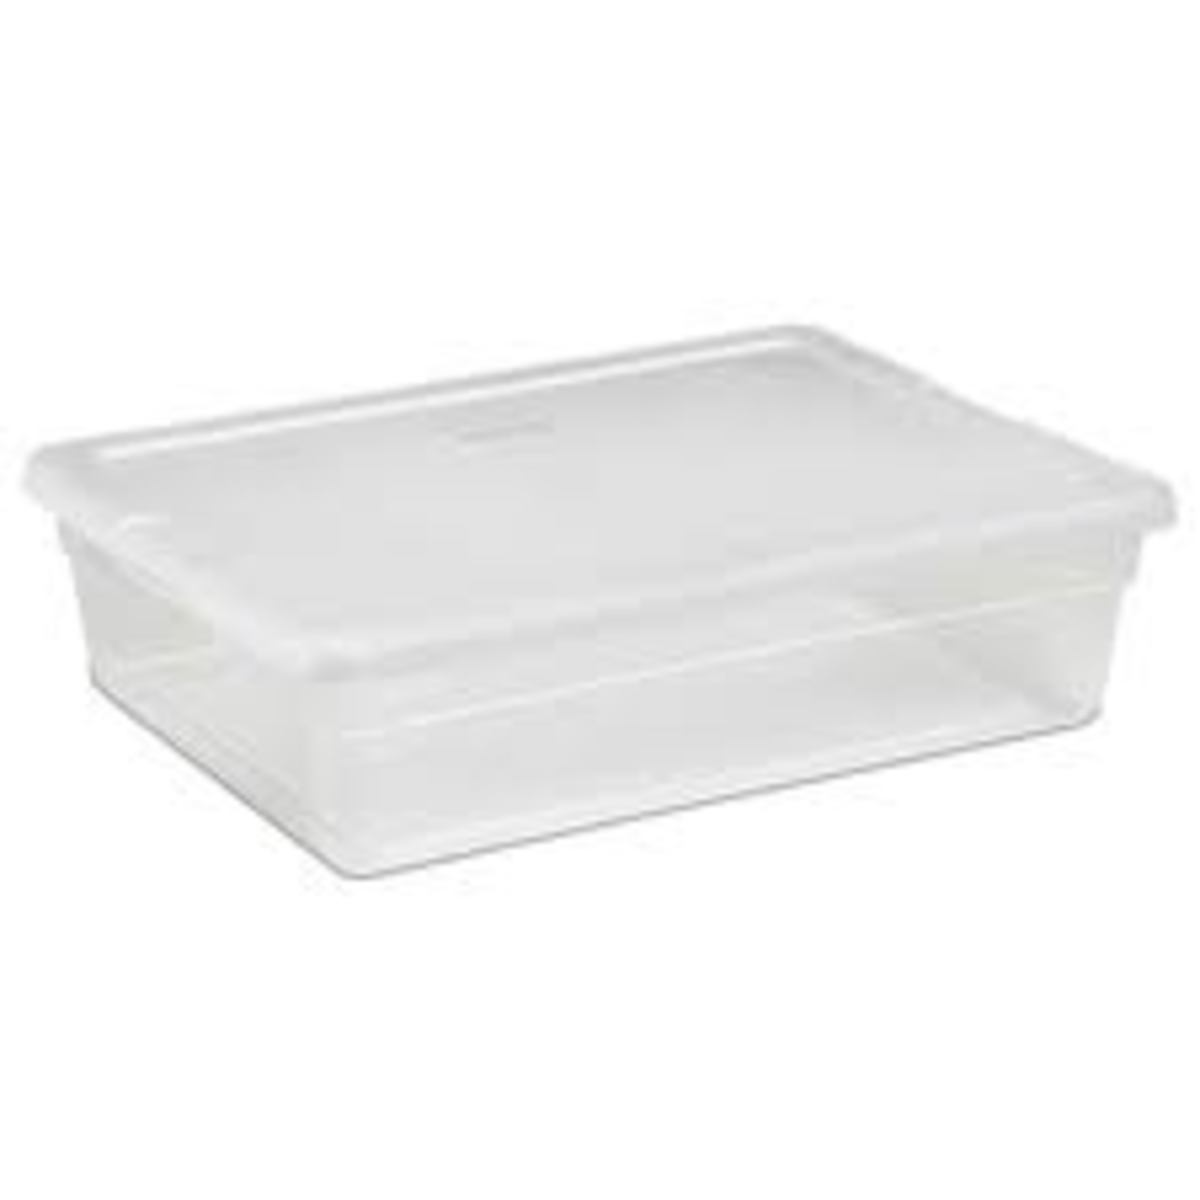 Under The Bed Storage Container from Walmart